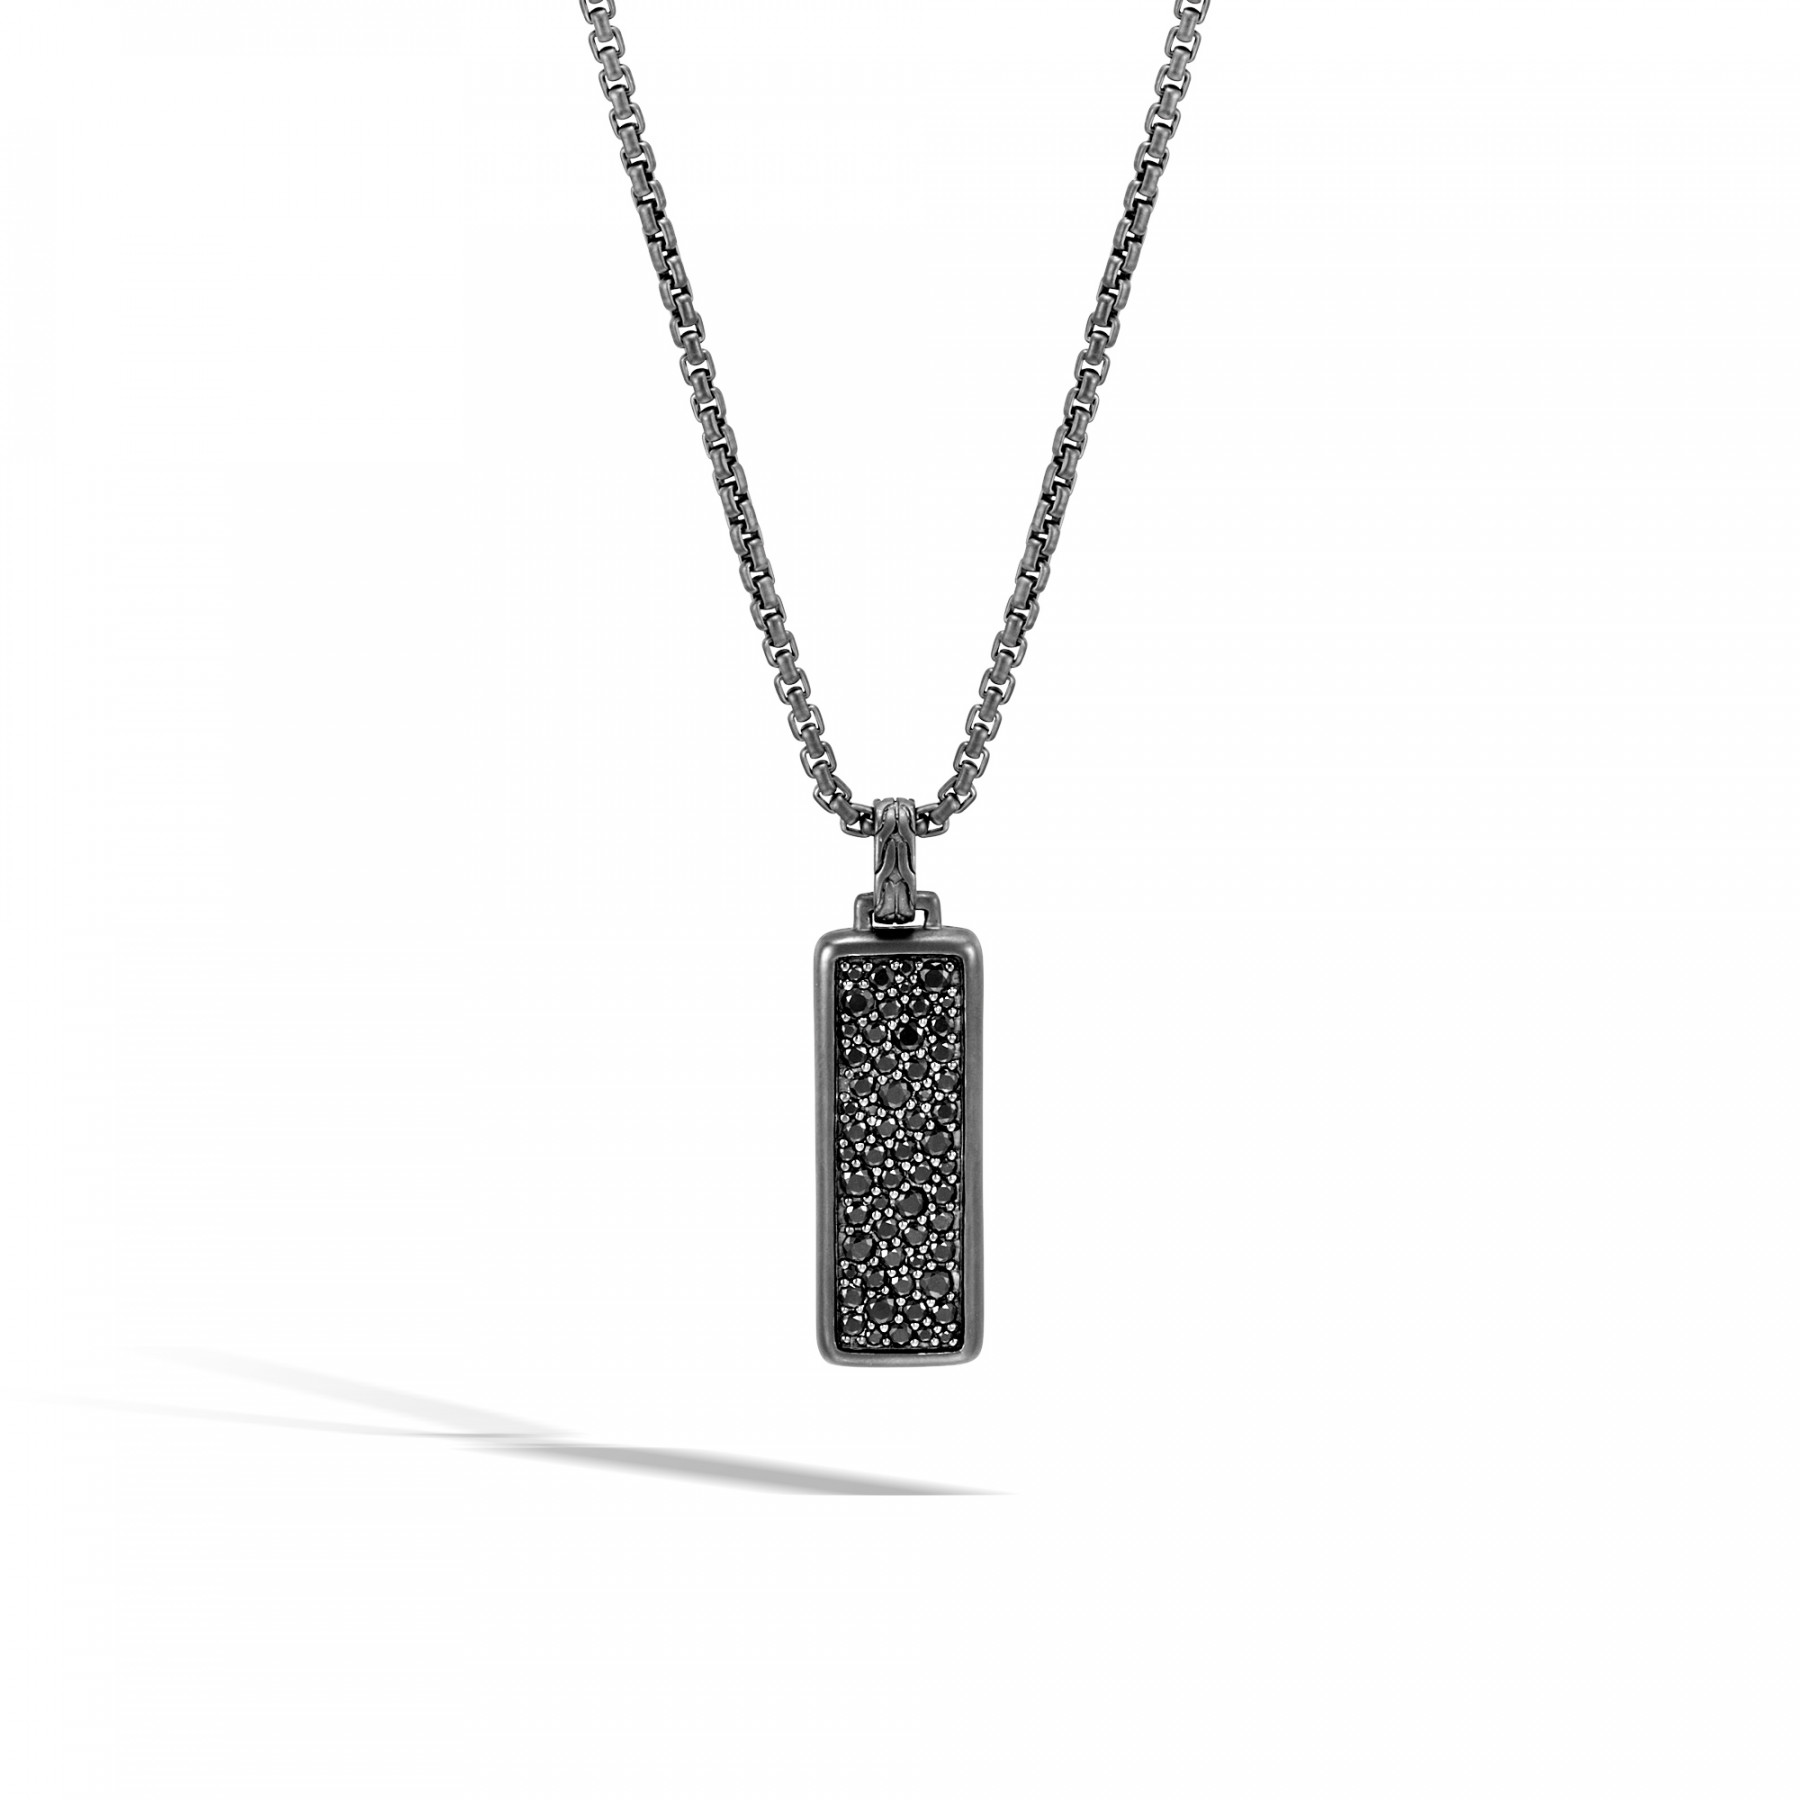 John Hardy Classic Chain Black Sapphire Pendant Necklace in Black Rhodium front view